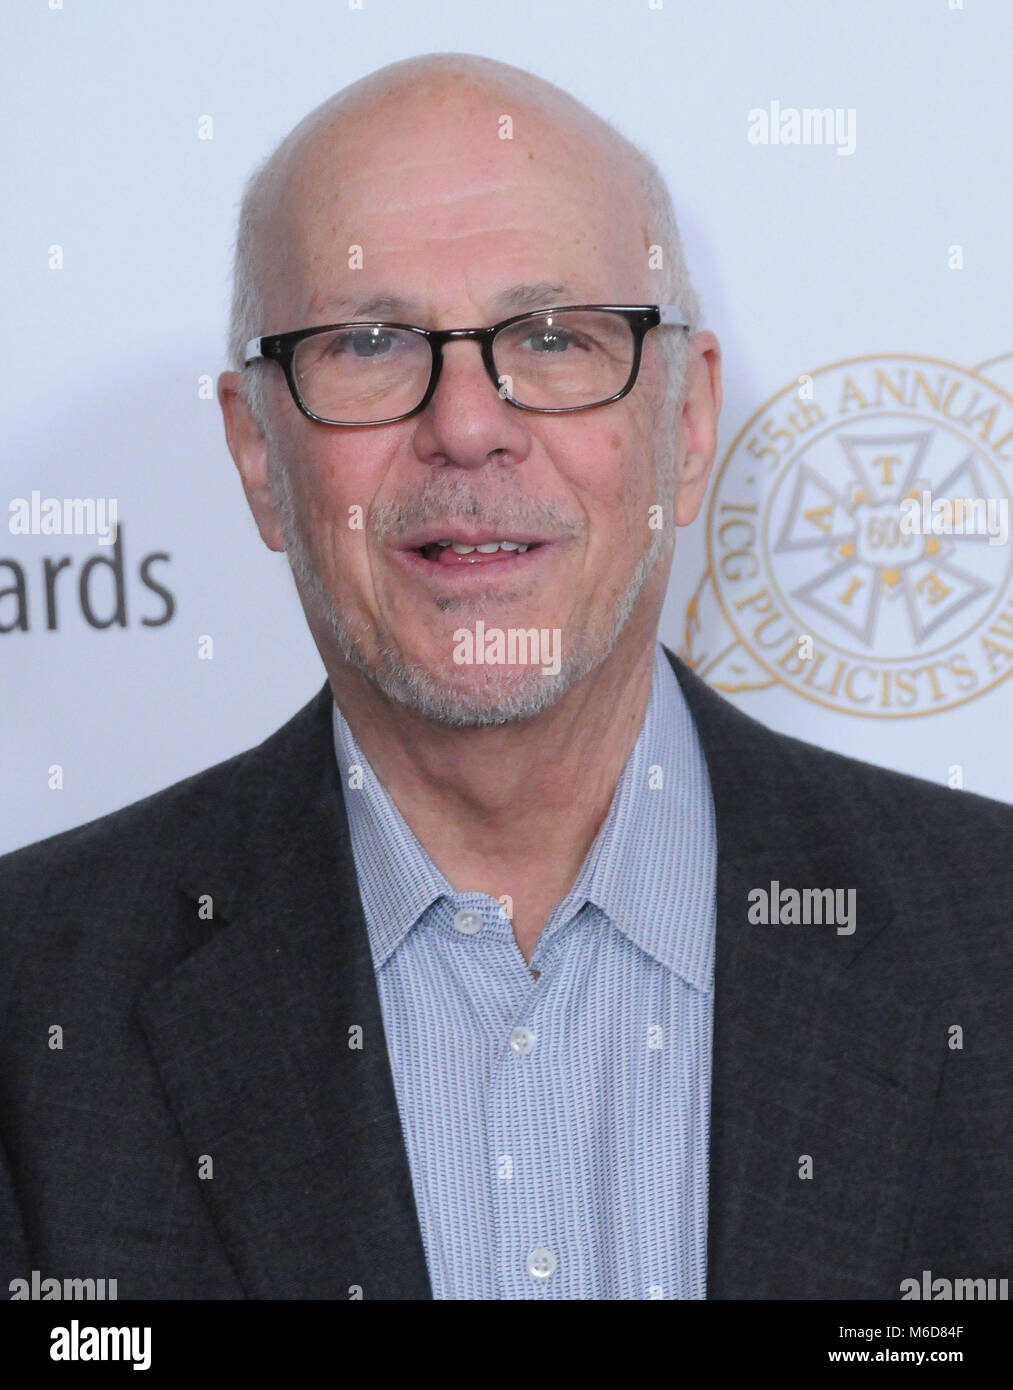 Beverly Hills, California, USA. 2nd March, 2018. Publicist STan Rosenfield attends the 55th Annual ICG Publicists - Stock Image